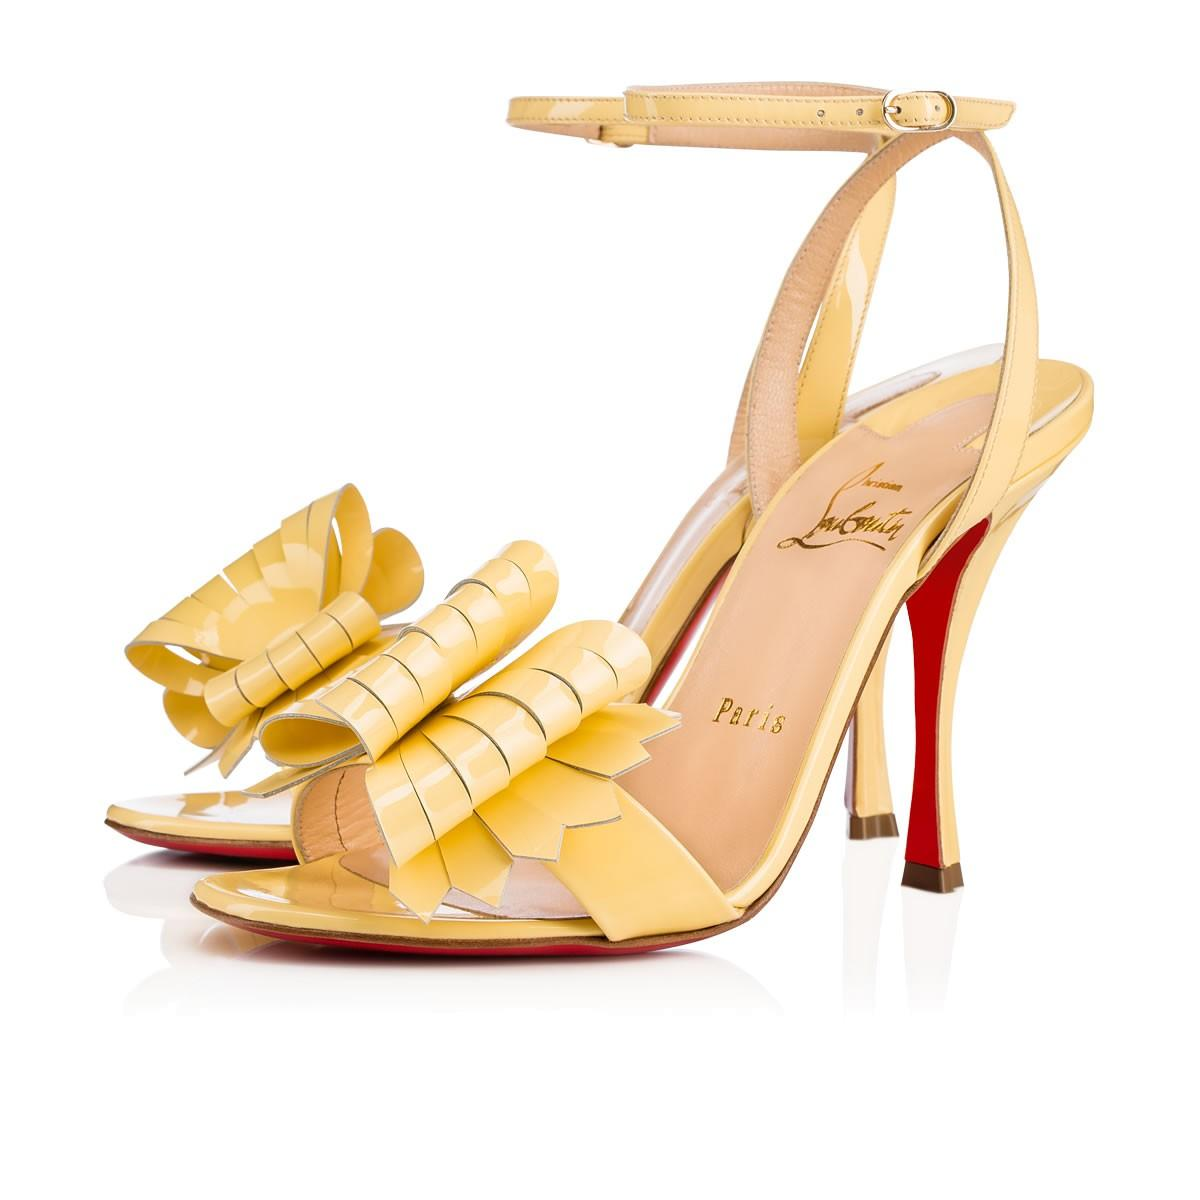 0c2fc915e24 Christian Louboutin Miss Valois Patent In Vanille